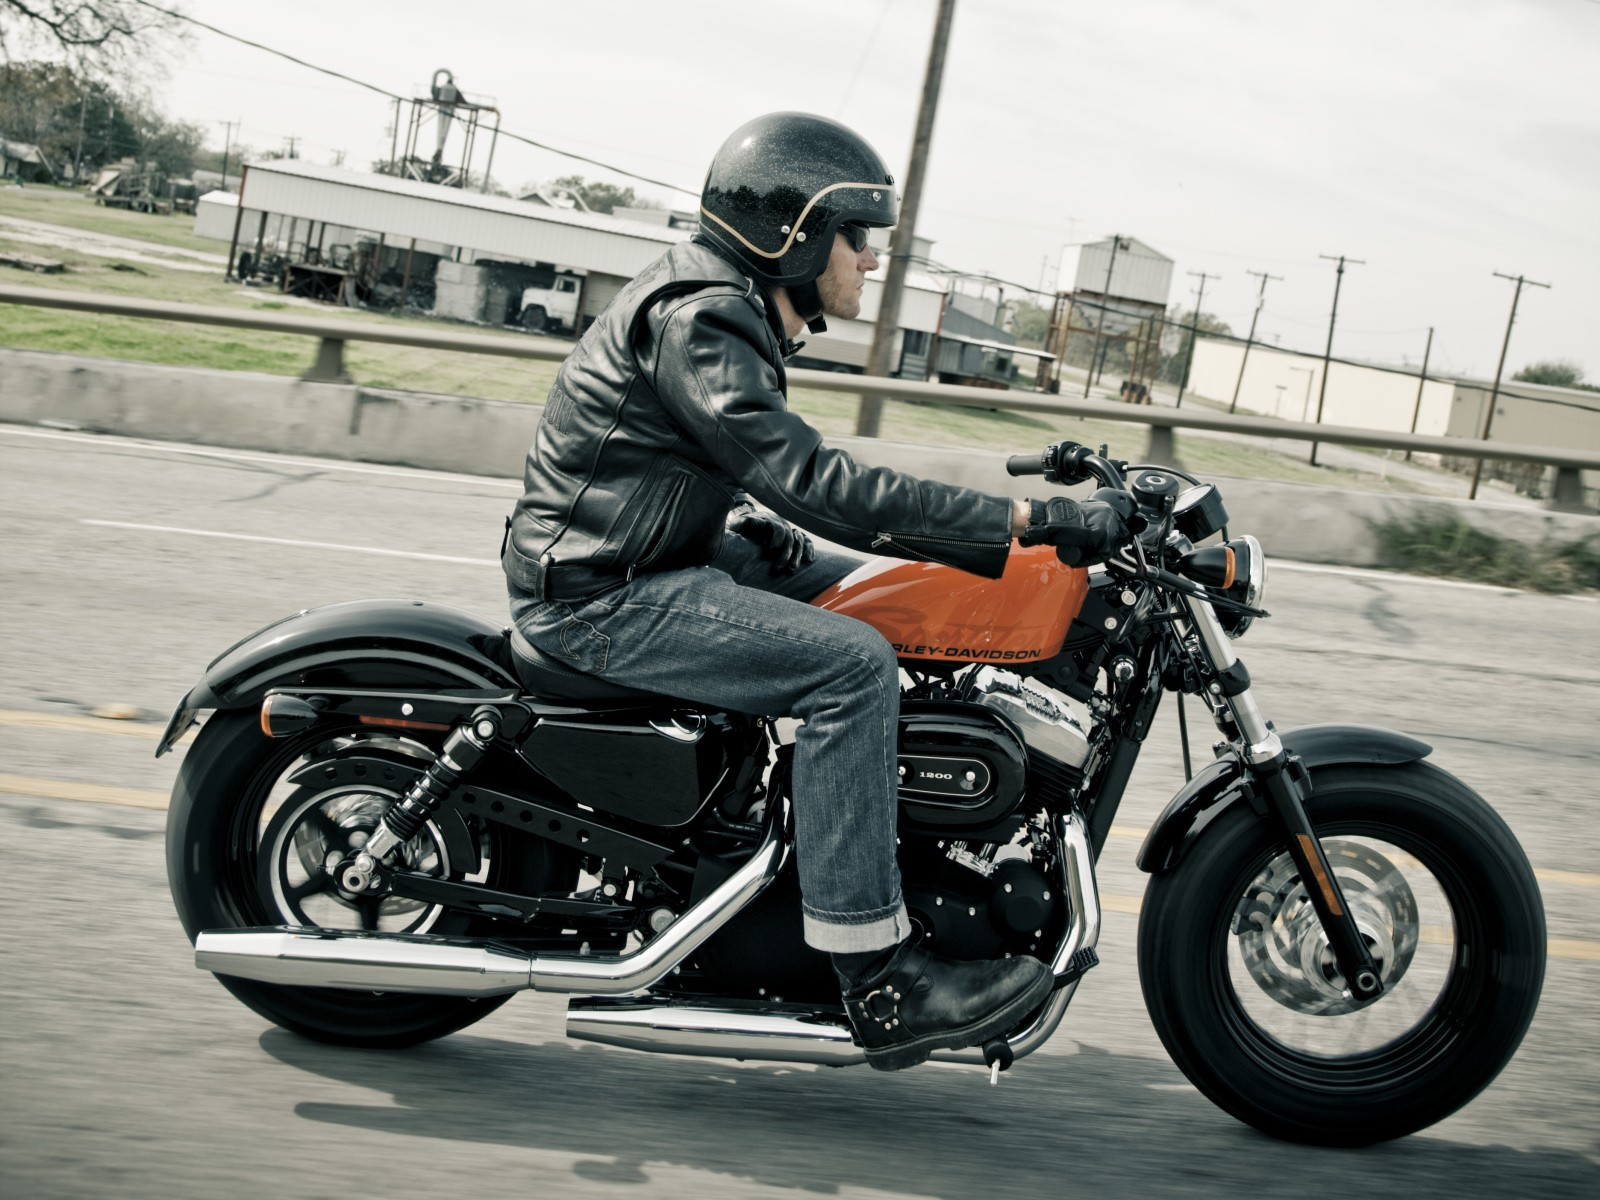 Harley Davidson Forty Eight For Sale In India